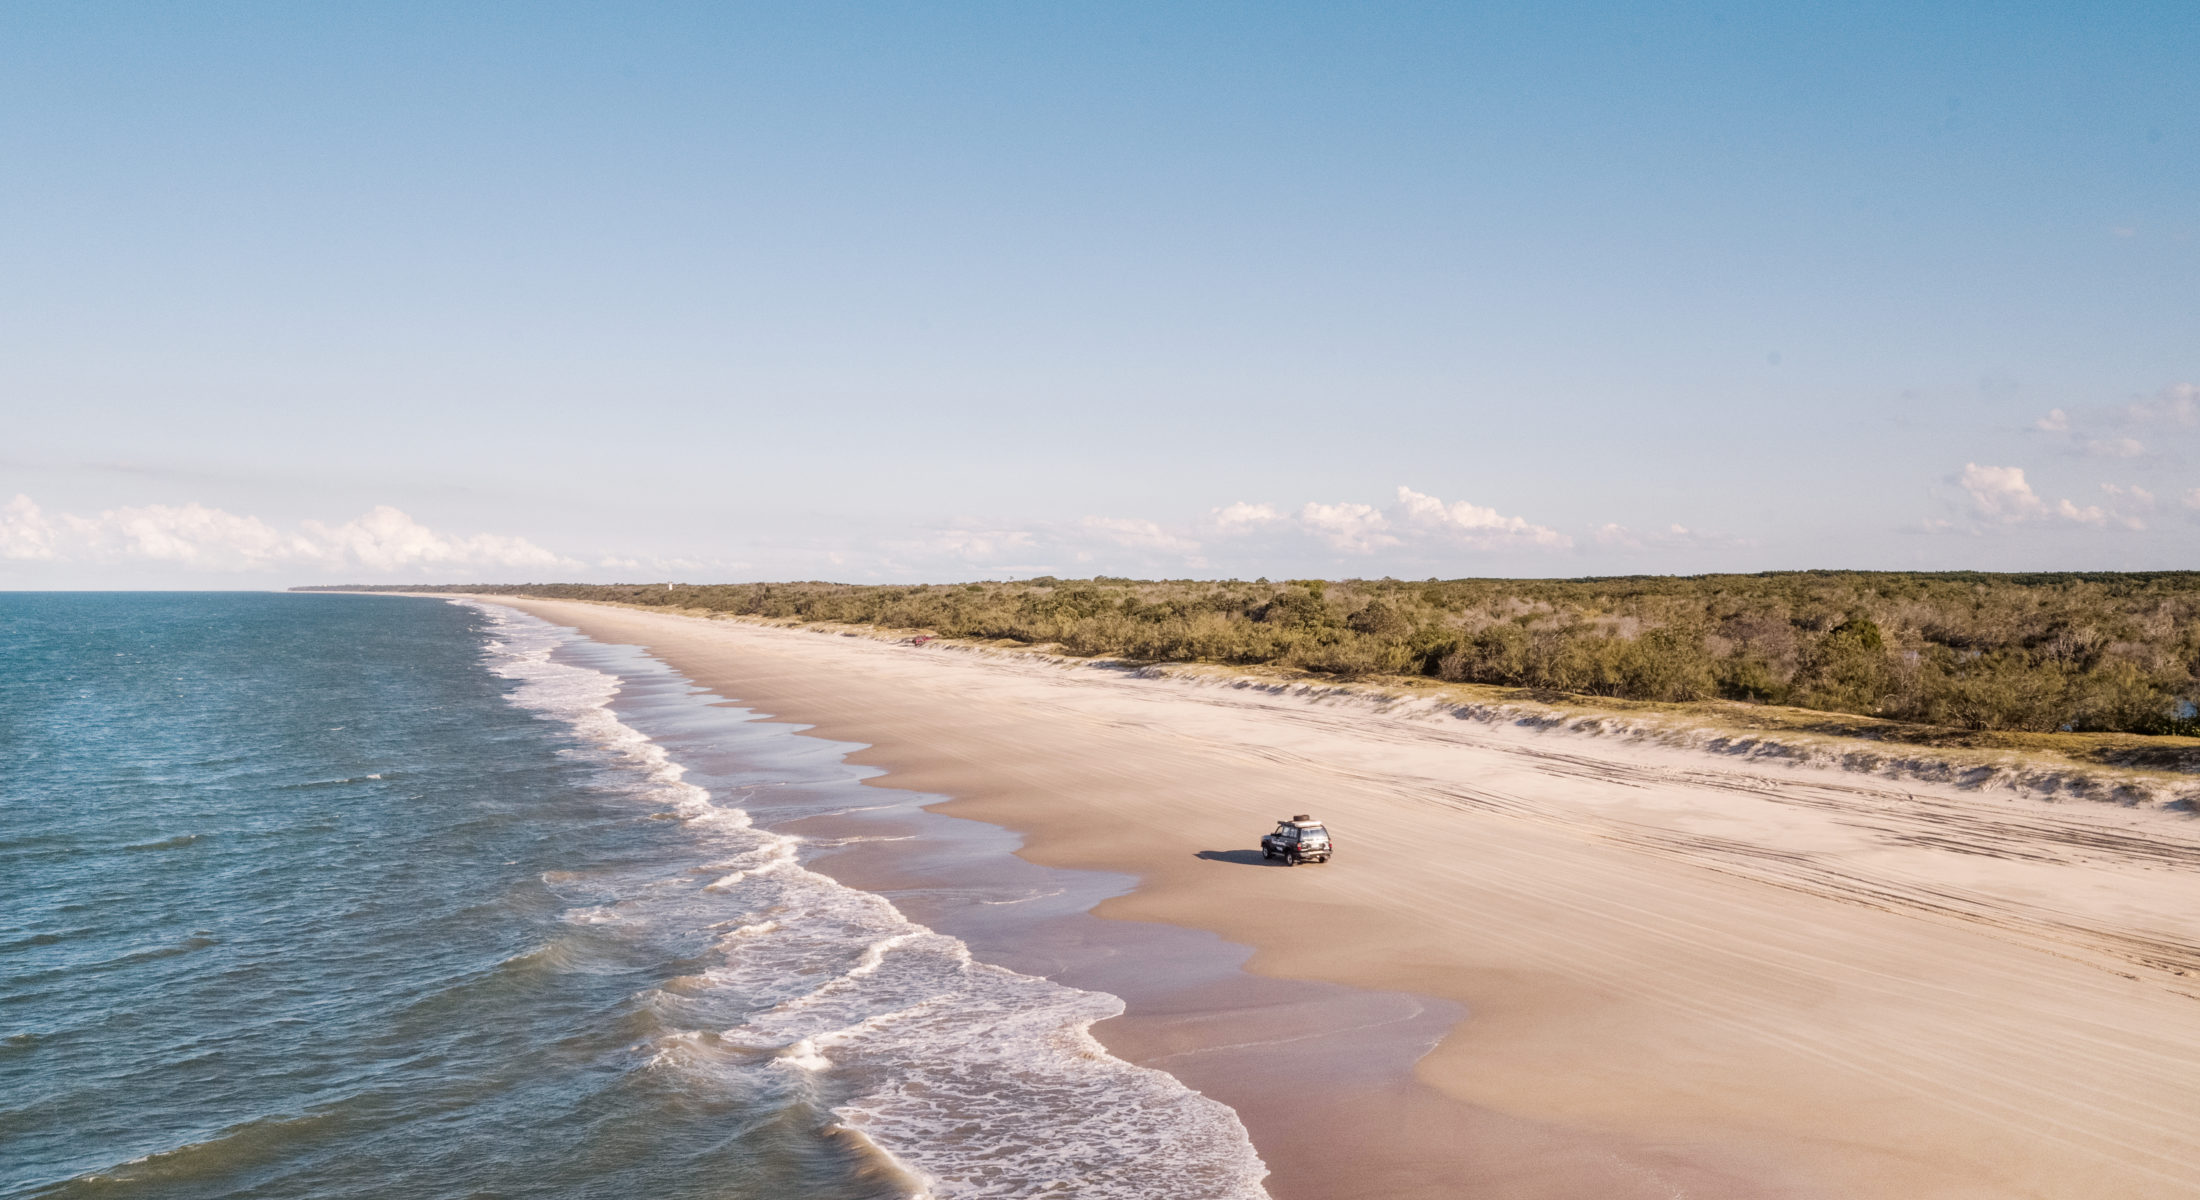 Bribie Island National Park beautiful beaches visit moreton bay region